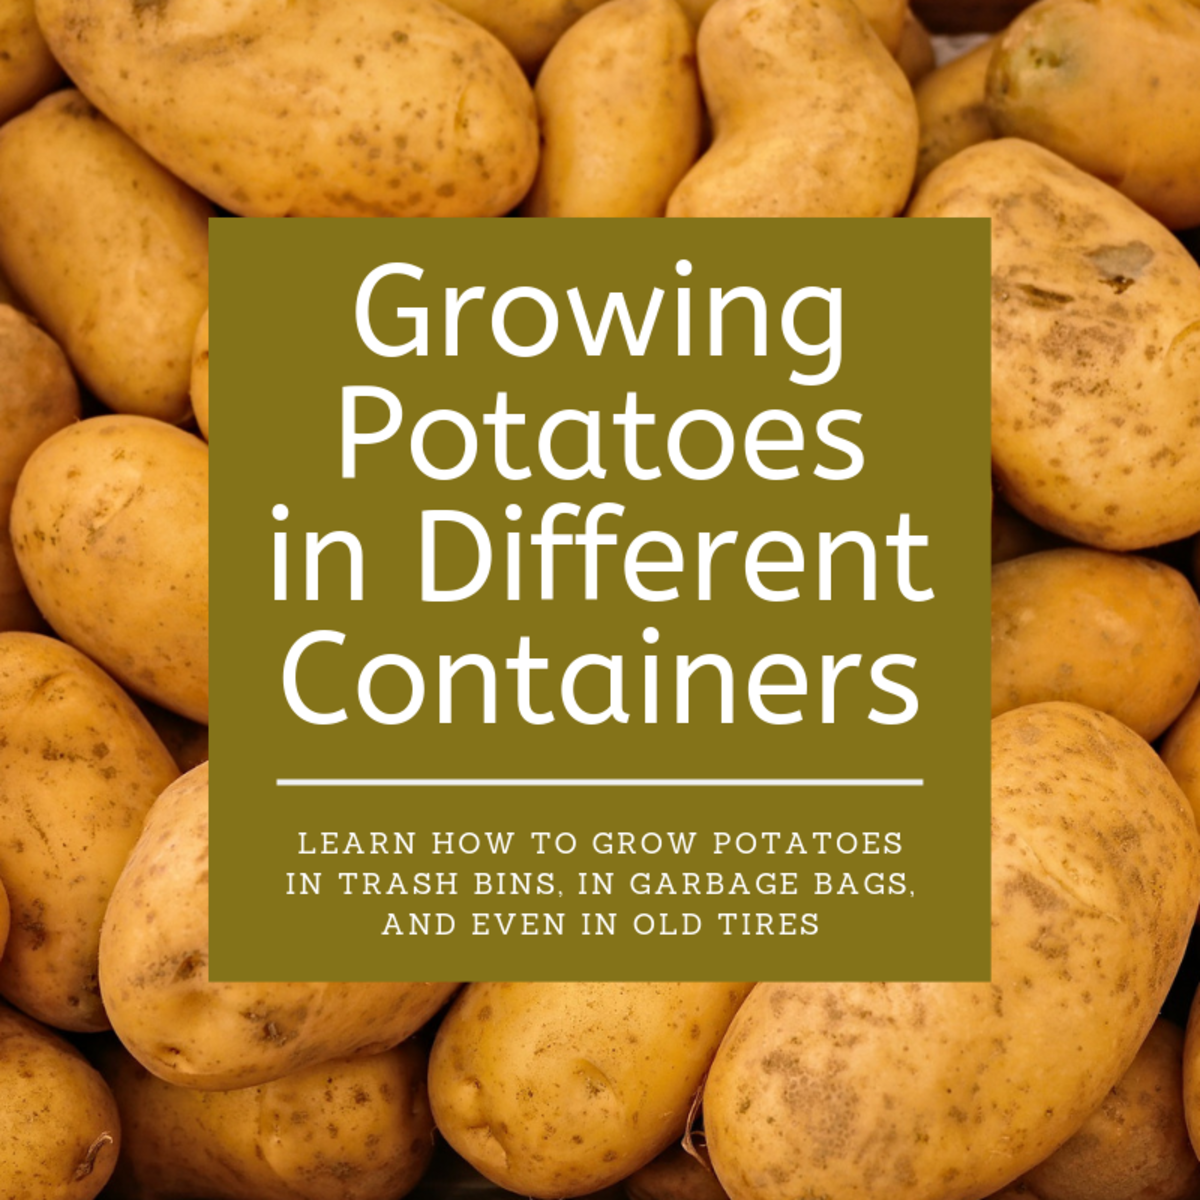 Trash Cans, Garbage Bags, and Old Tires: How to Grow Potatoes in Different Containers